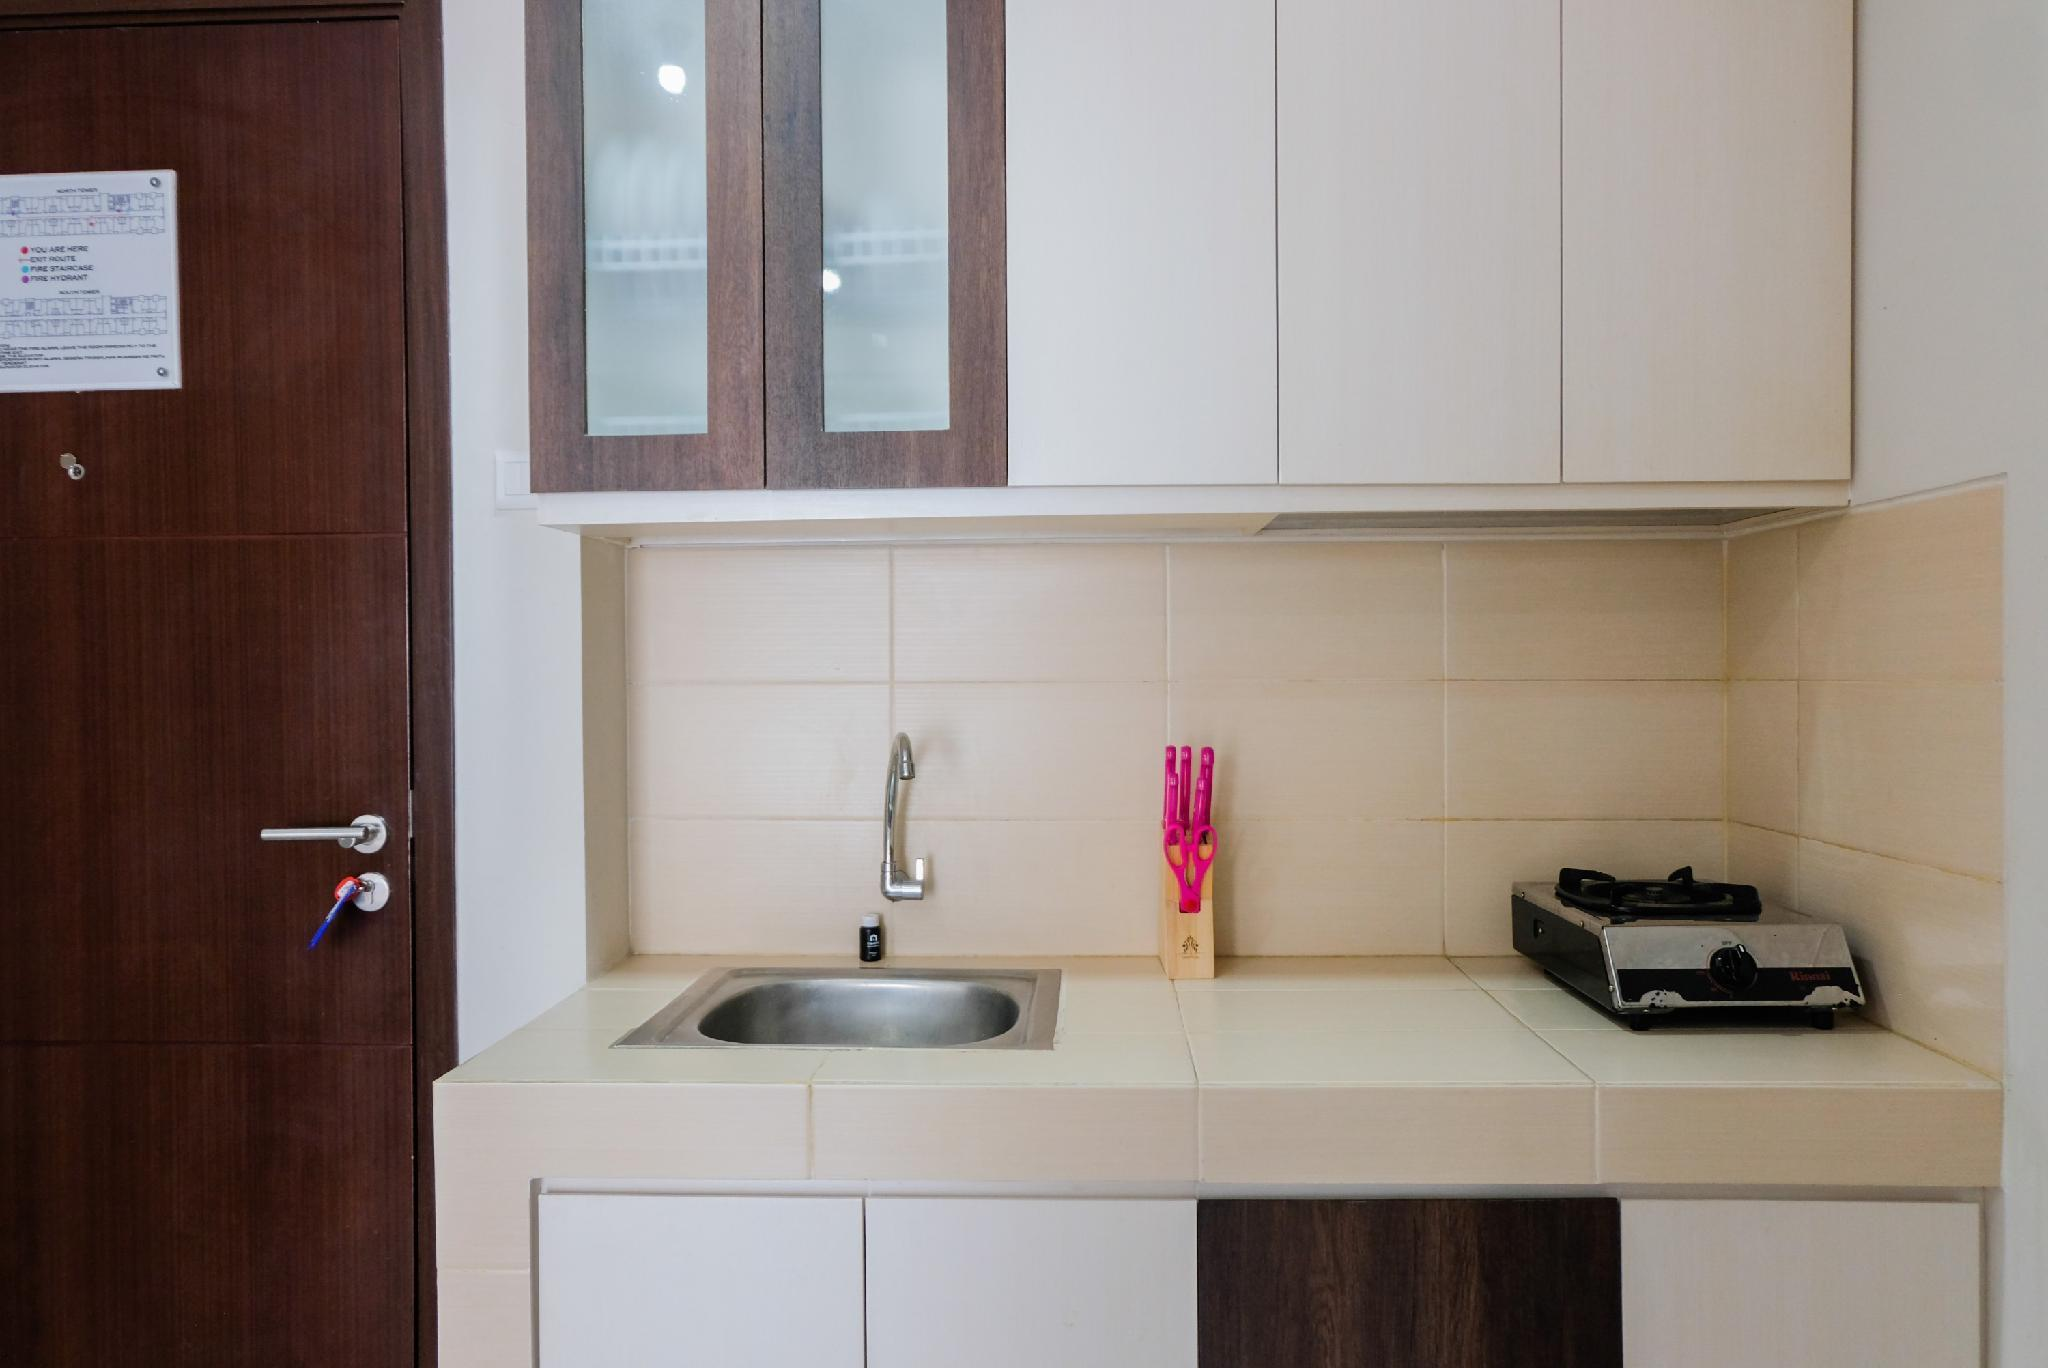 1BR Cozy Stay At Saveria Apartment By Travelio